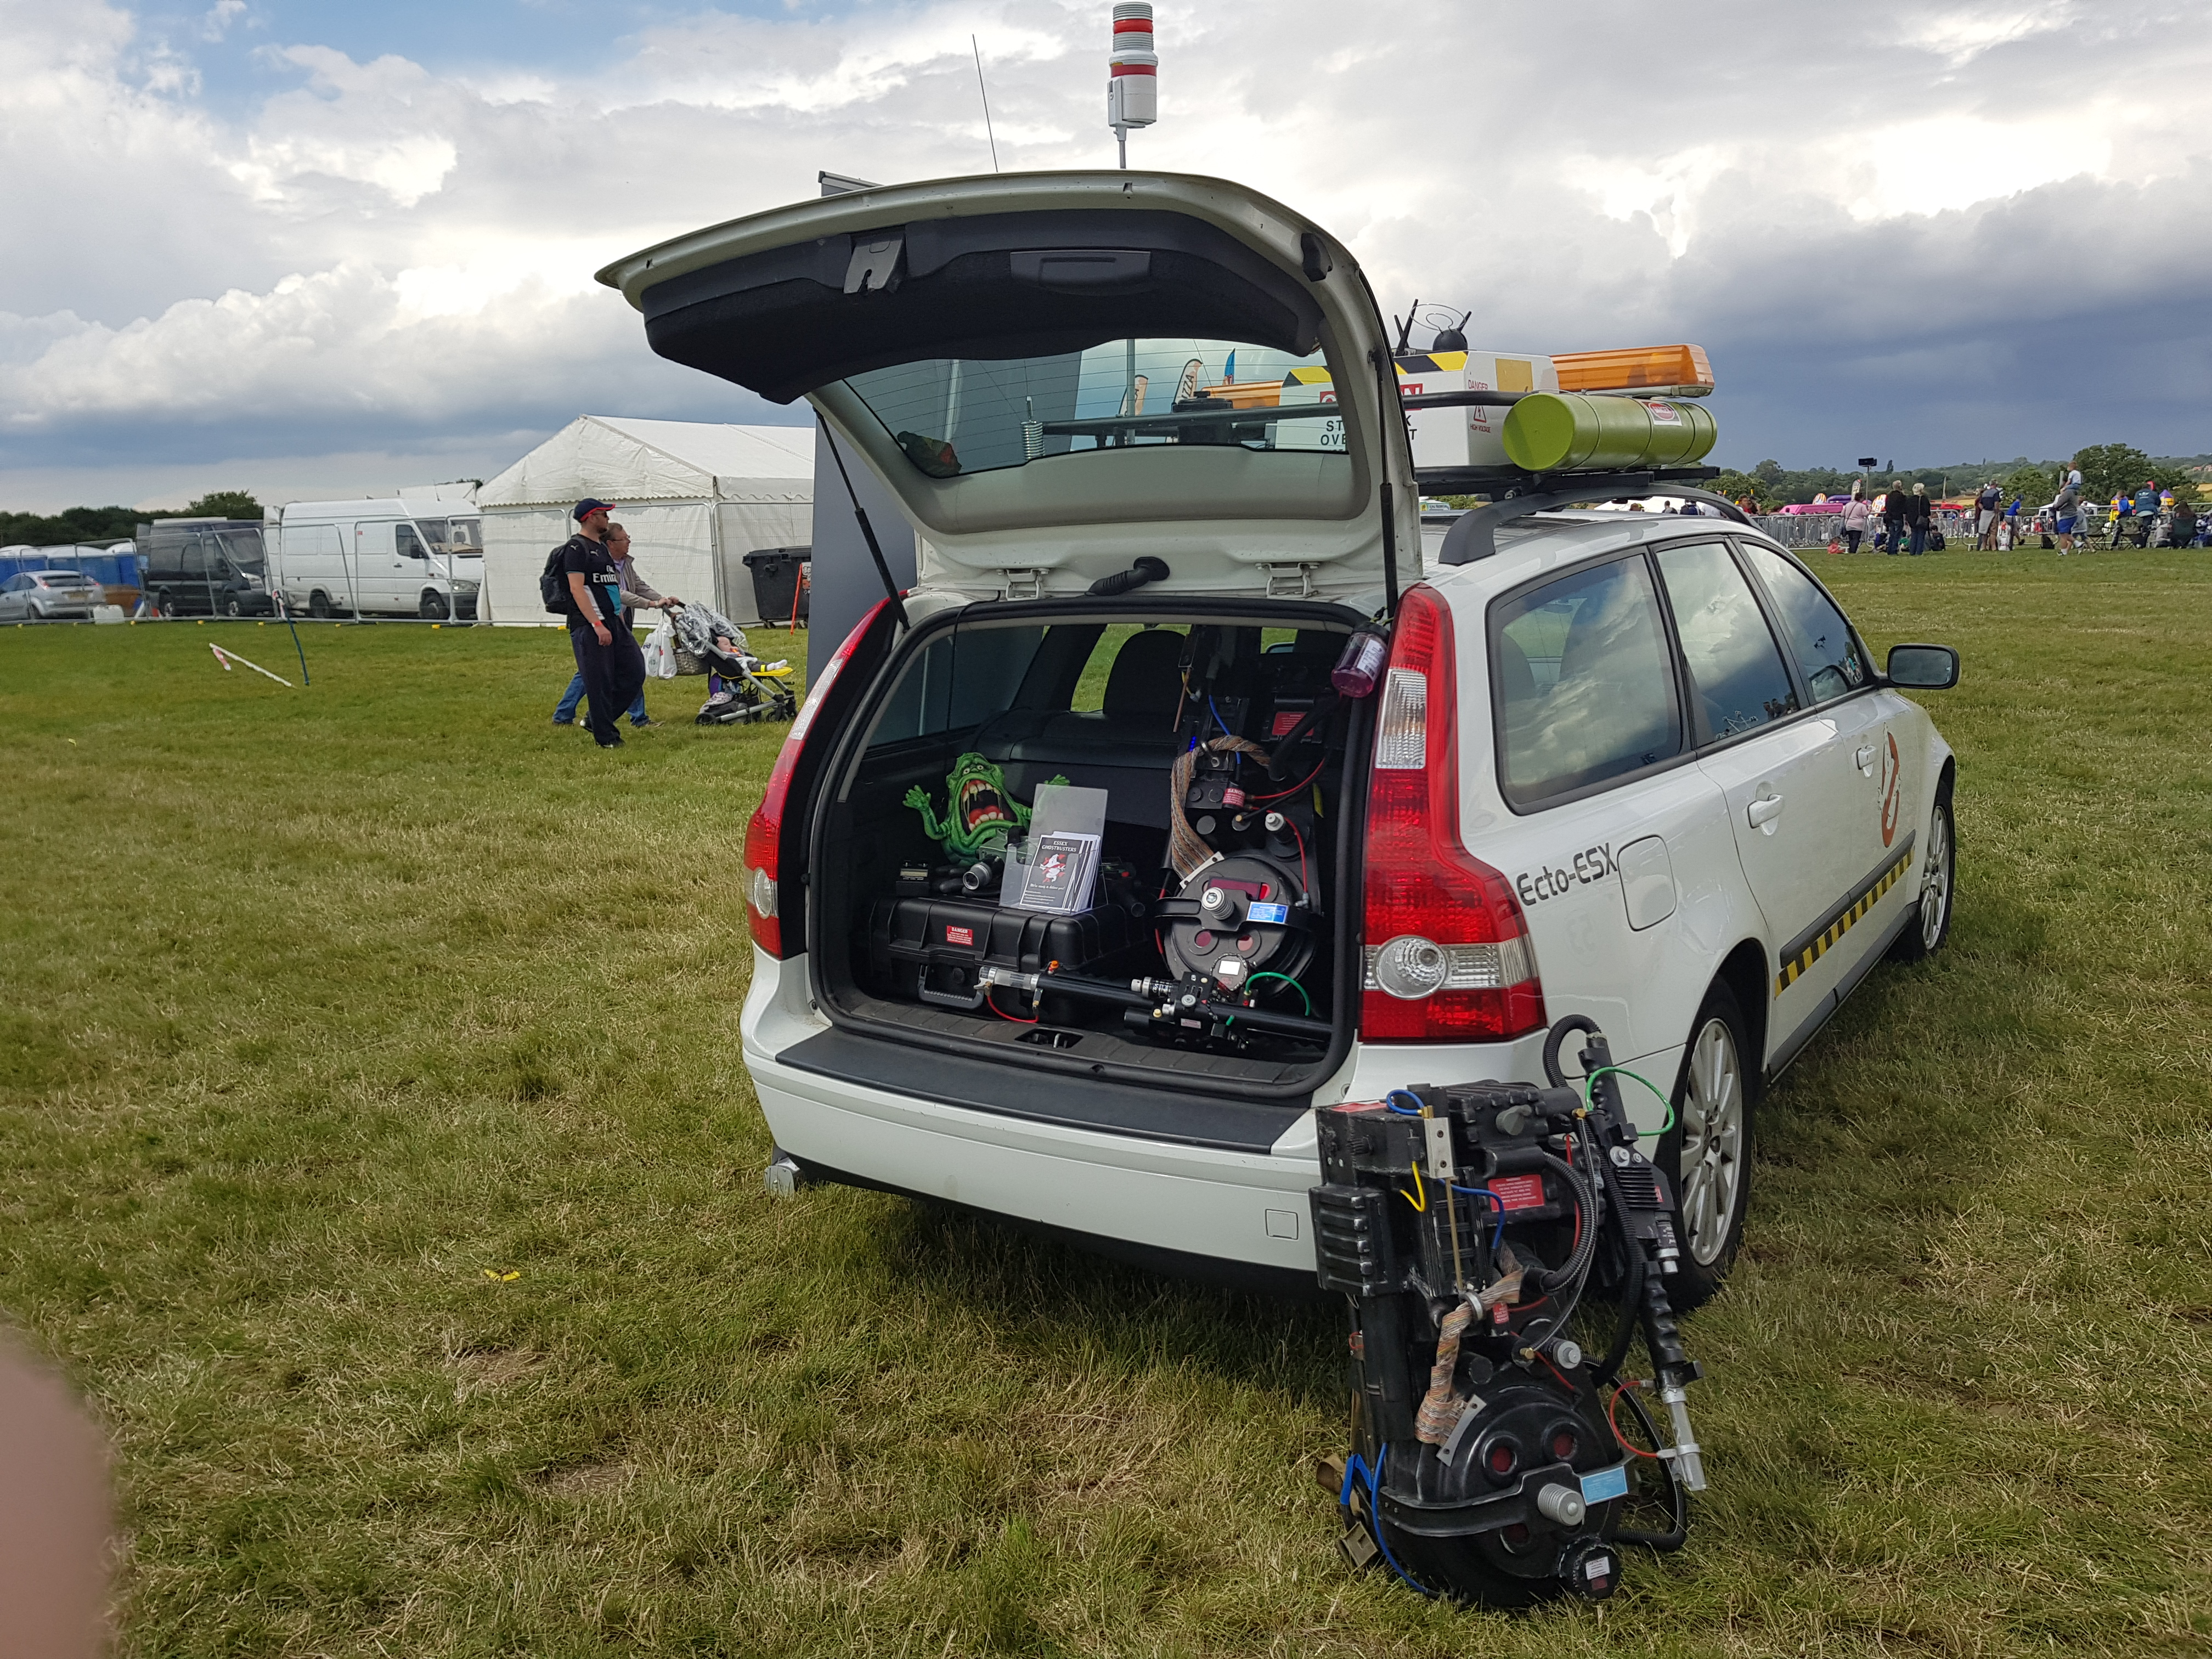 Ecto-Esx @ 2017 Festival of Wheels